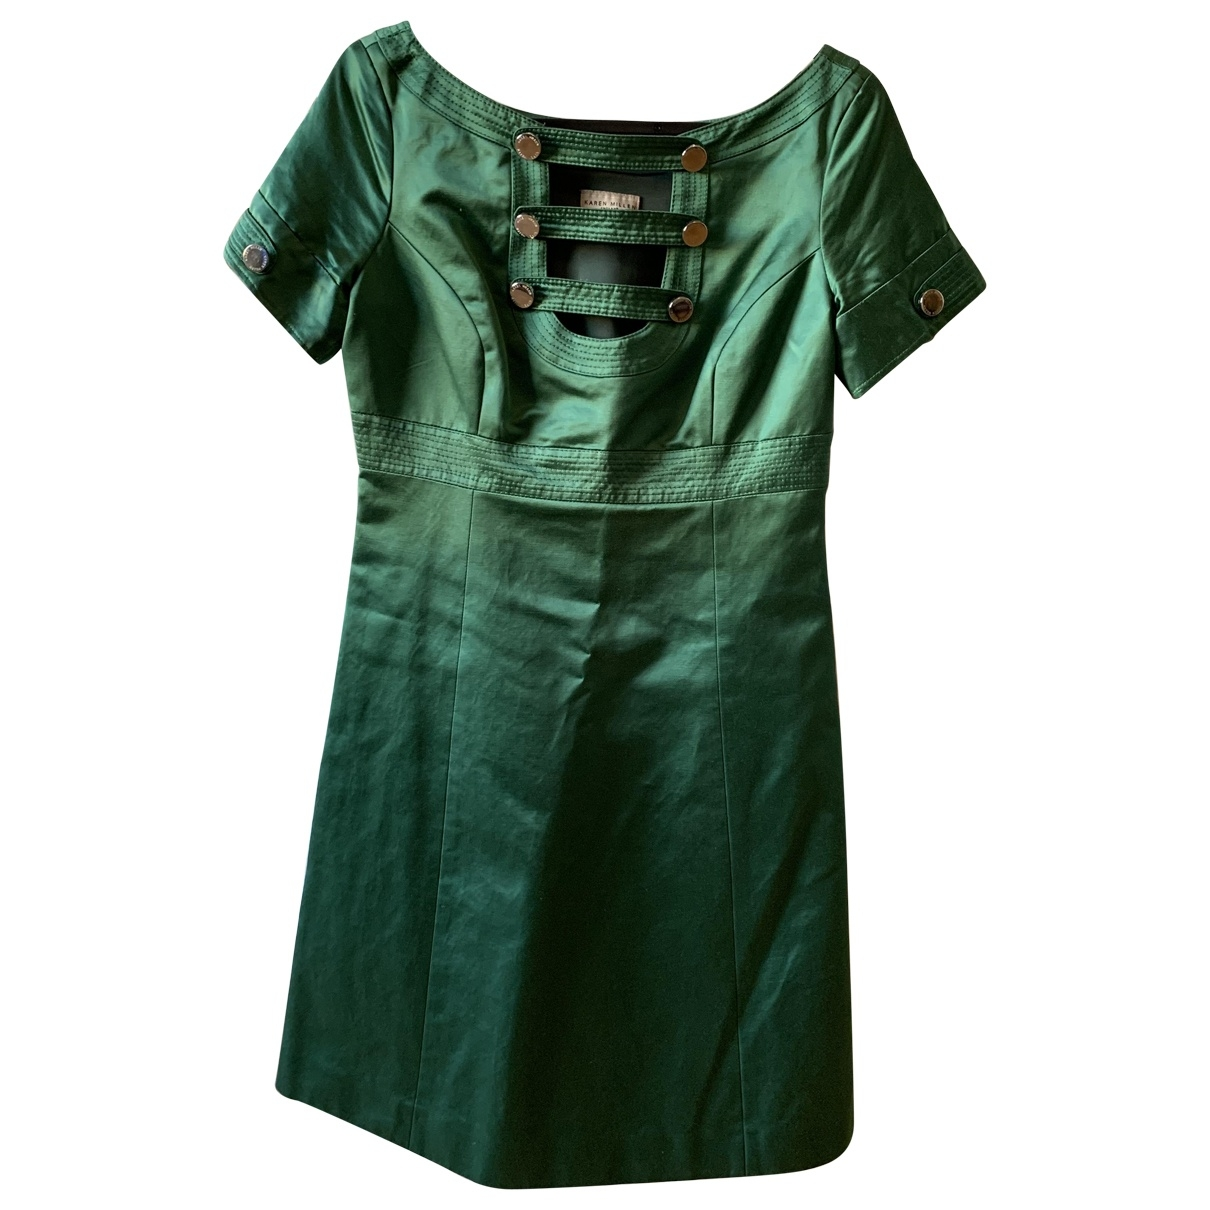 Karen Millen \N Green Silk dress for Women 8 UK